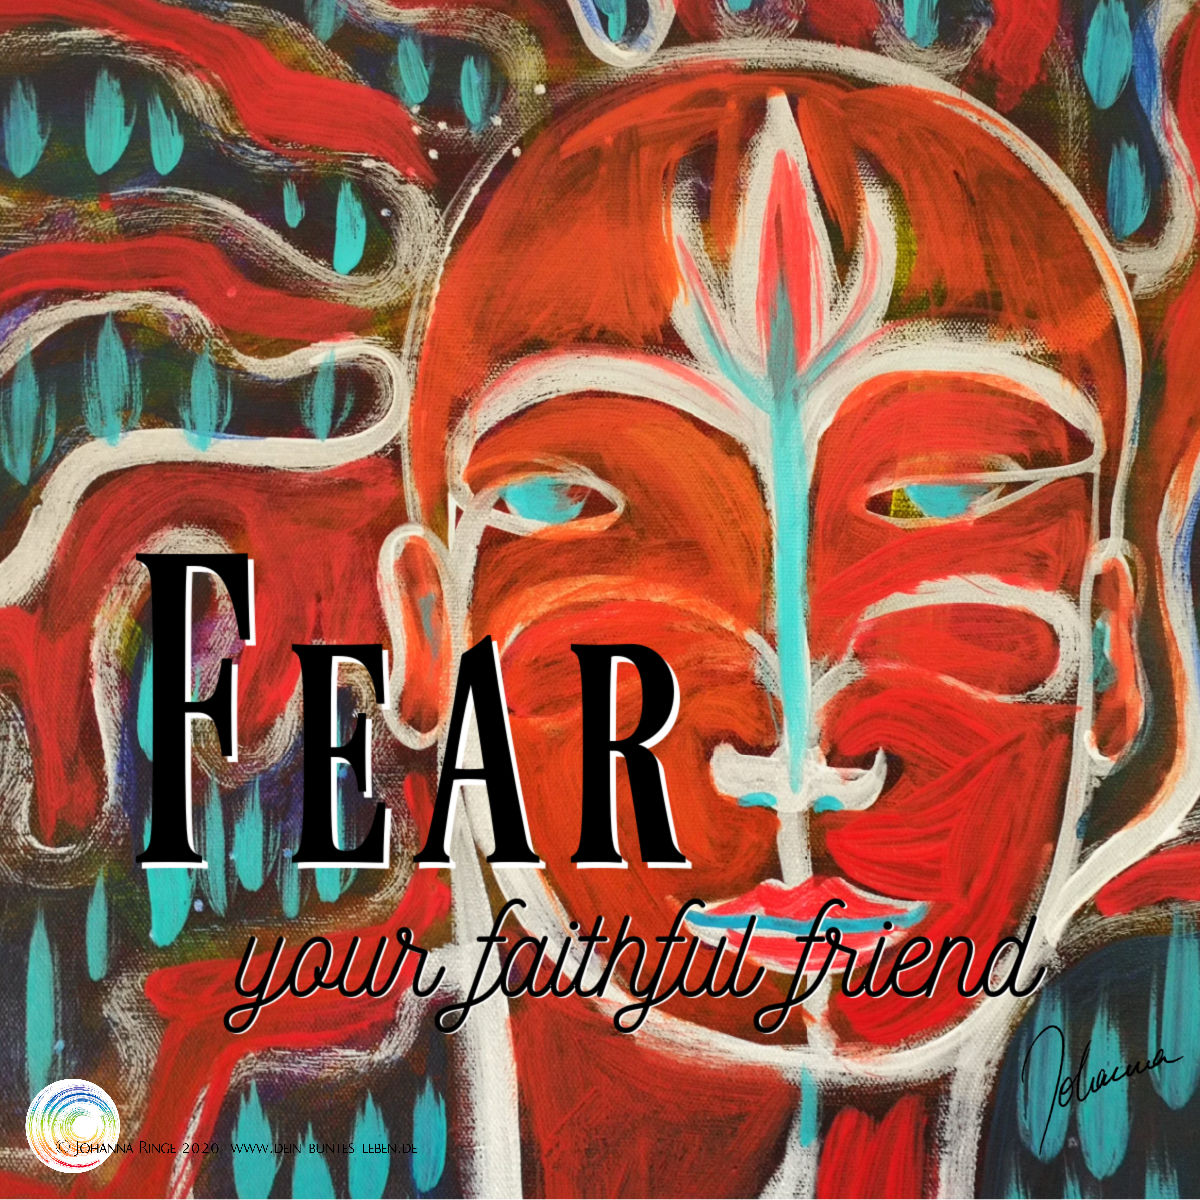 Fear, your faithful friend. (Text on painting of a ominous face) ©Johanna Ringe 2020 www.johannaringe.com